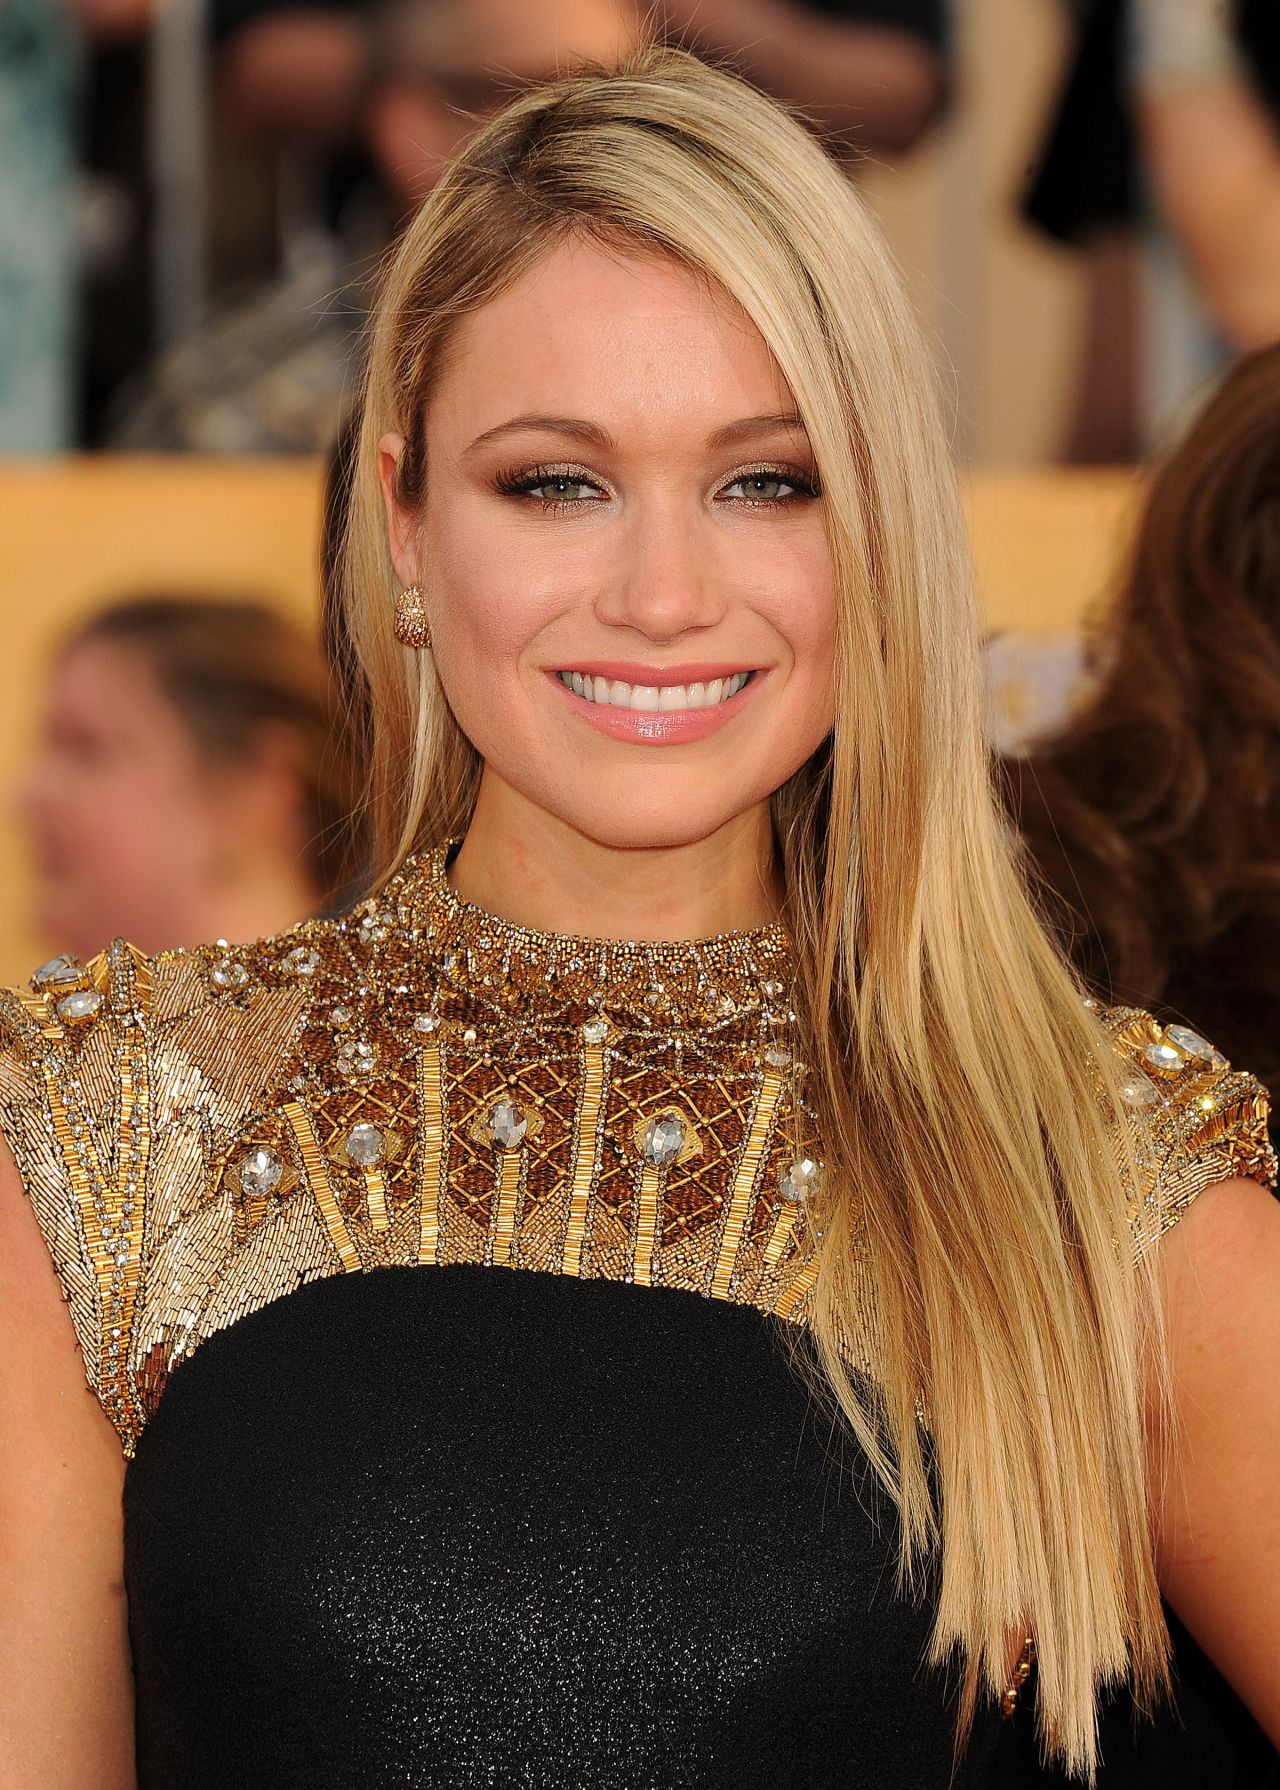 Katrina Bowden Wears Badgley Mischka Dress at 2014 SAG Awards